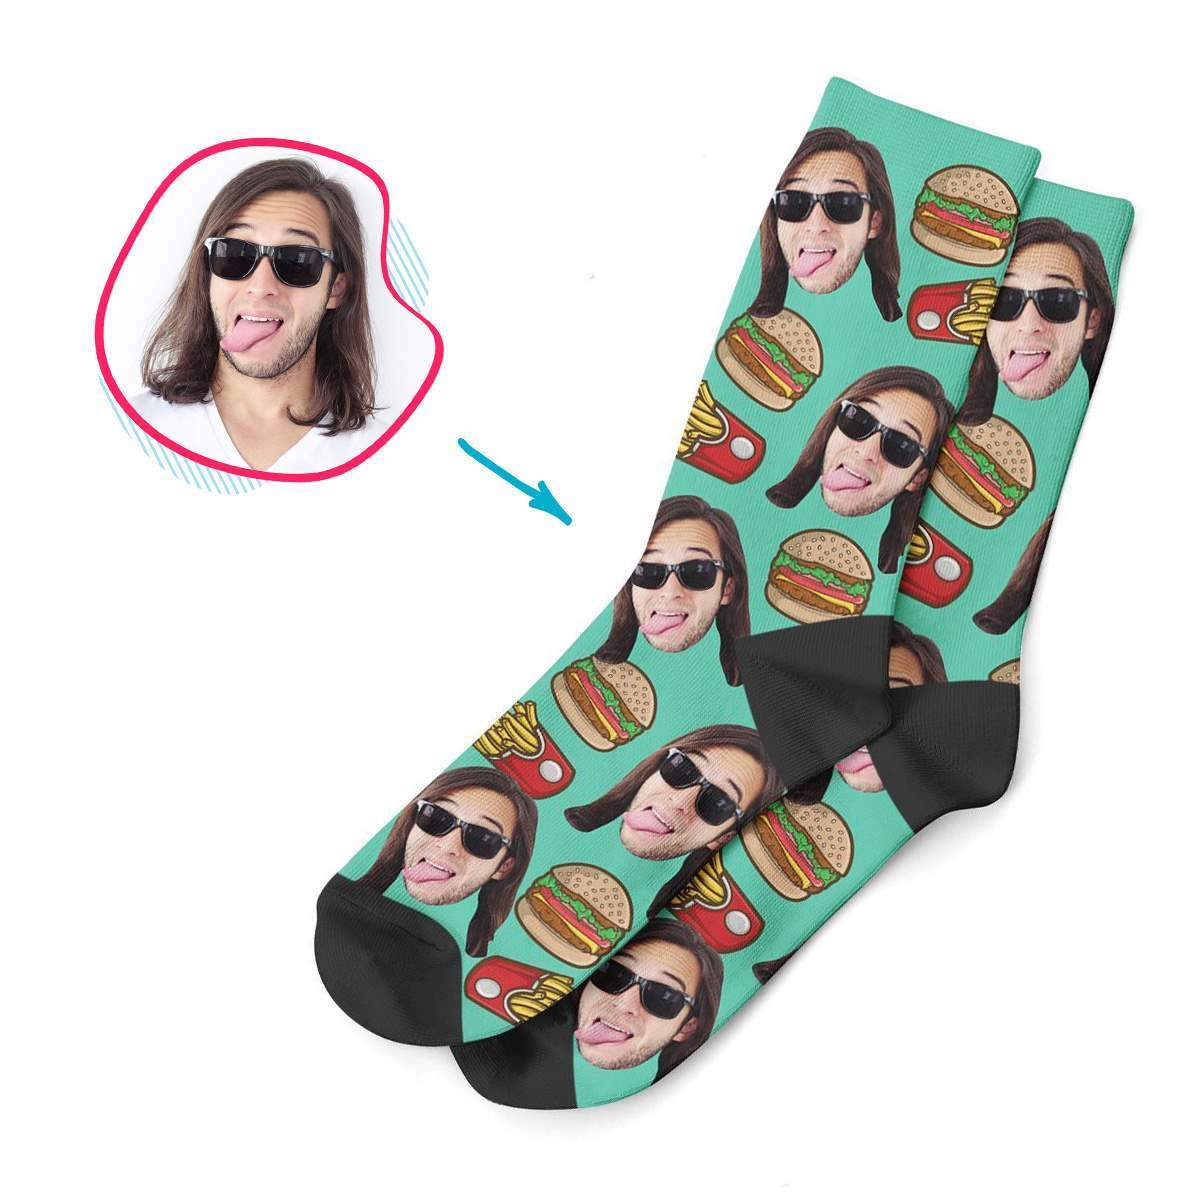 mint Fastfood socks personalized with photo of face printed on them